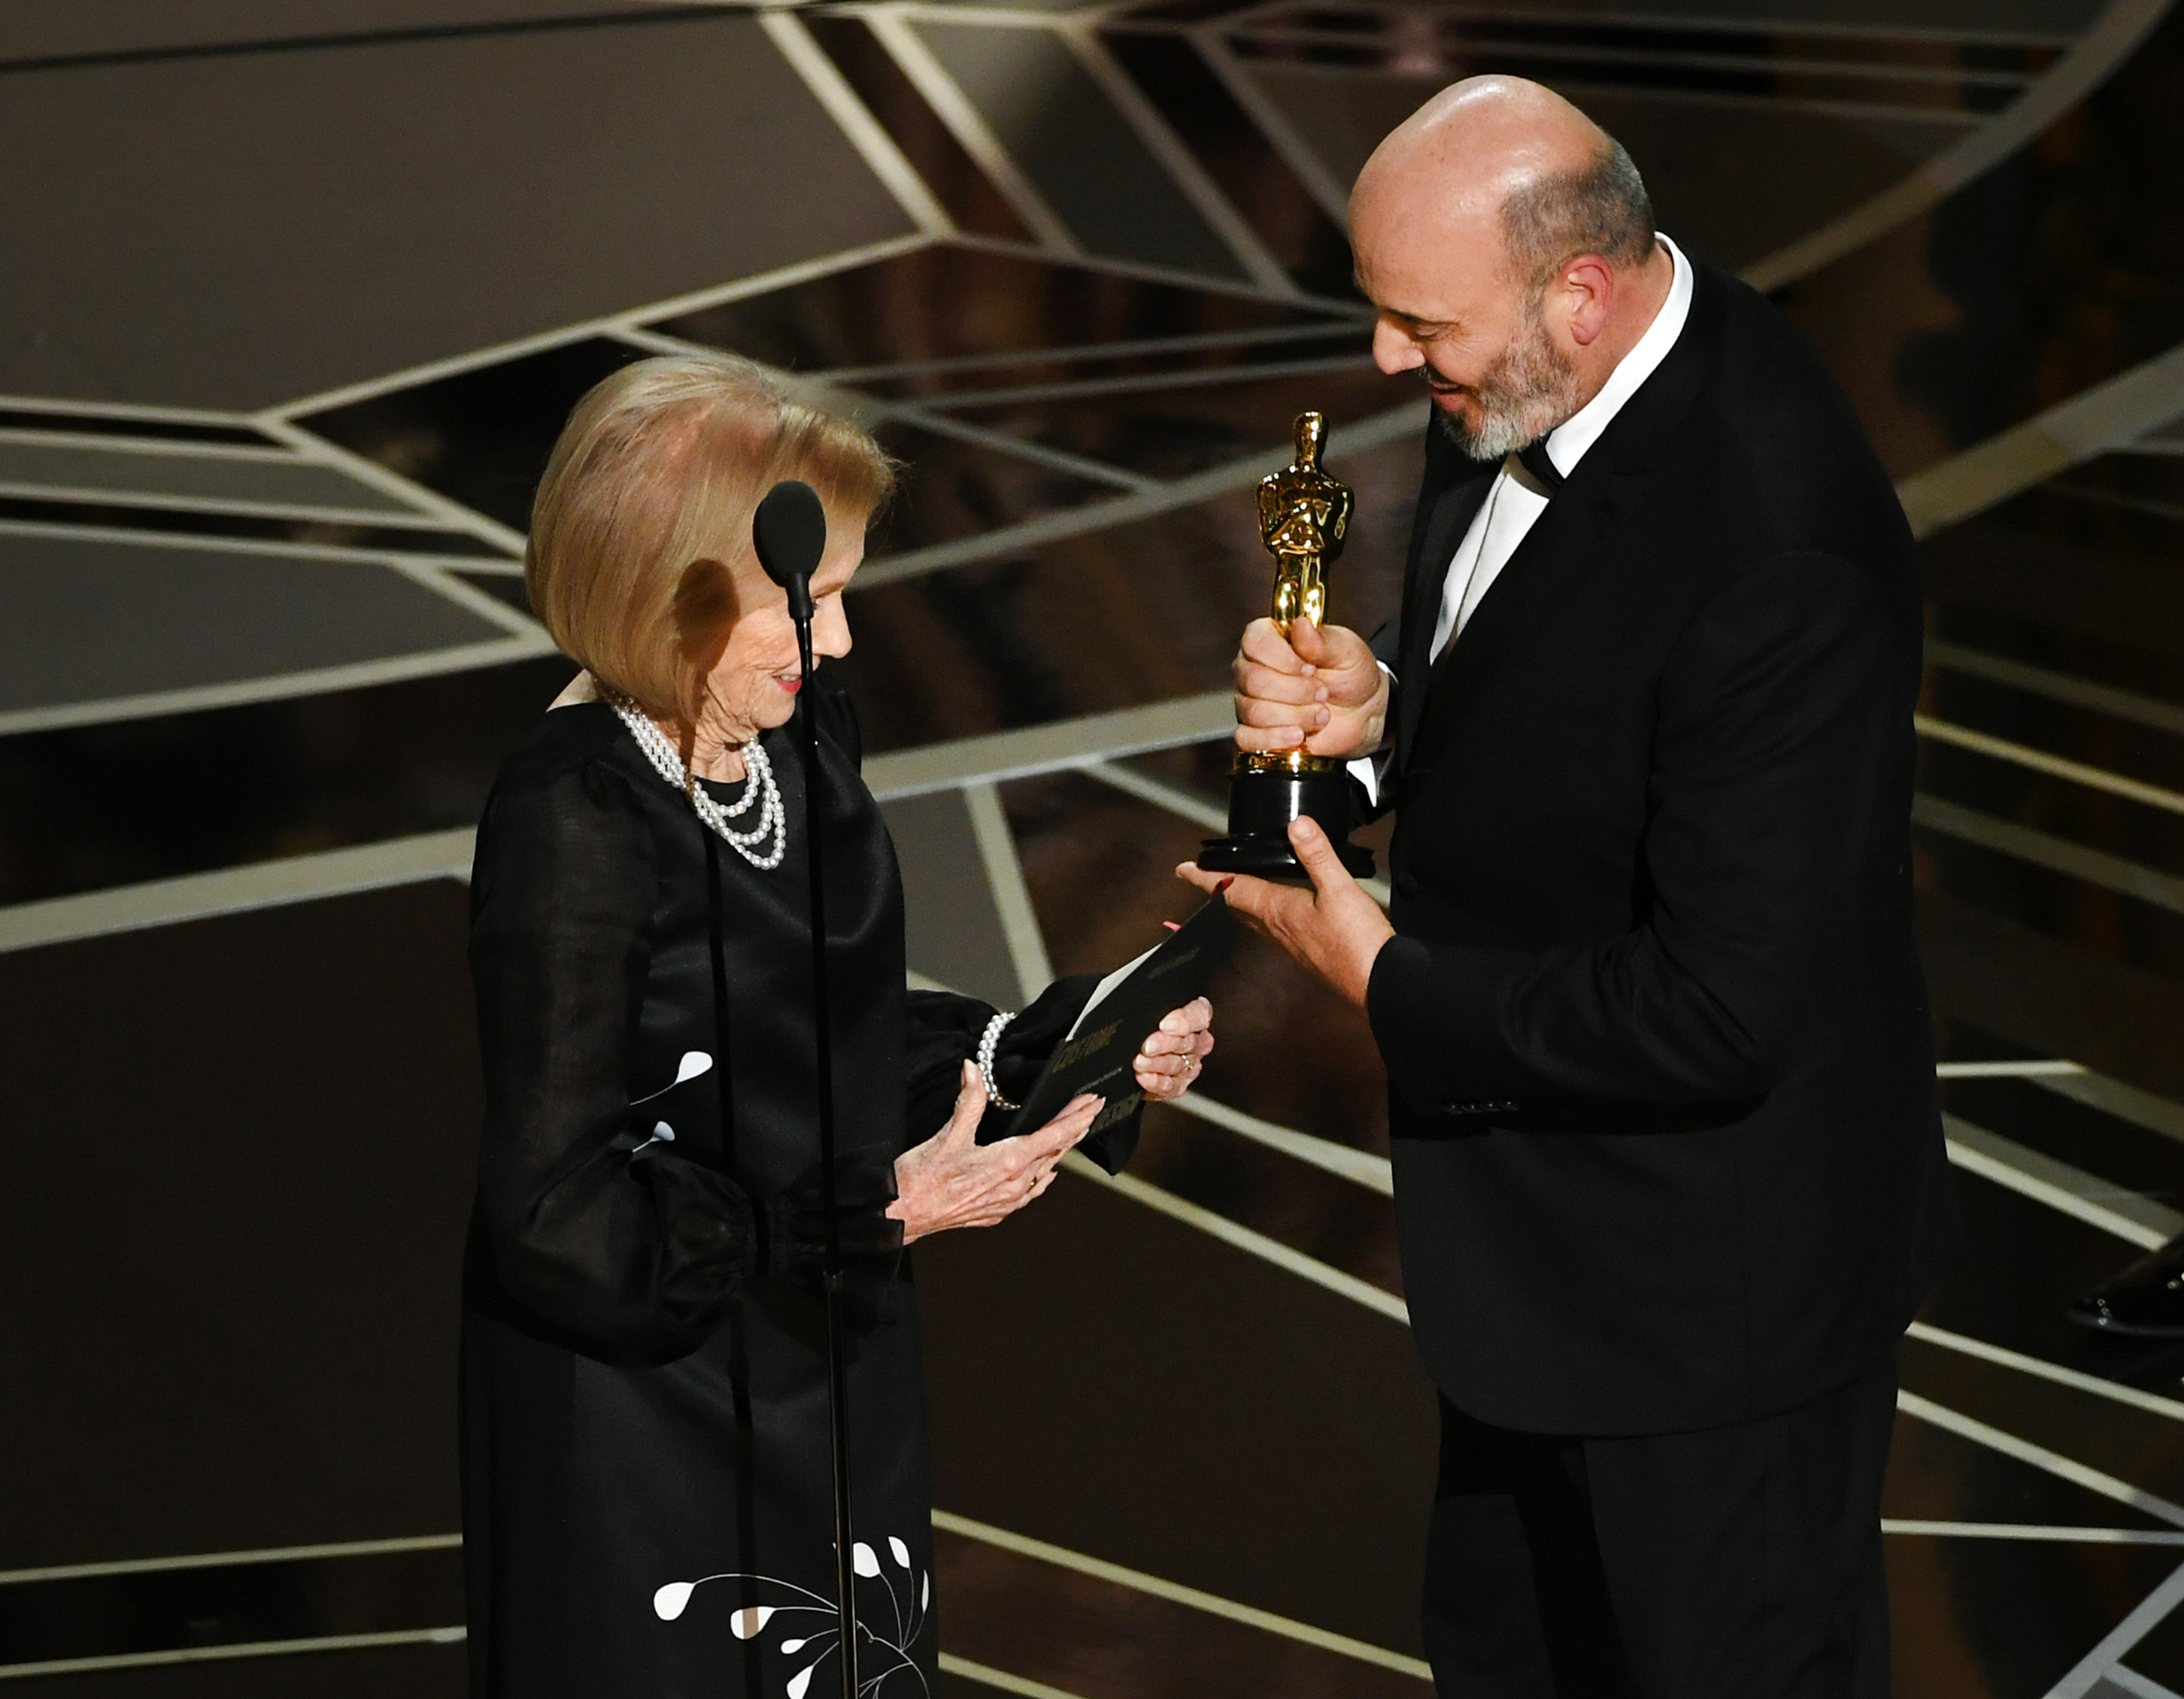 Costume designer Mark Bridges accepts Best Costume Design for 'Phantom Thread' from actor Eva Marie Saint onstage during the 90th Annual Academy Awards at the Dolby Theatre at Hollywood & Highland Center on March 4, 2018 in Hollywood.